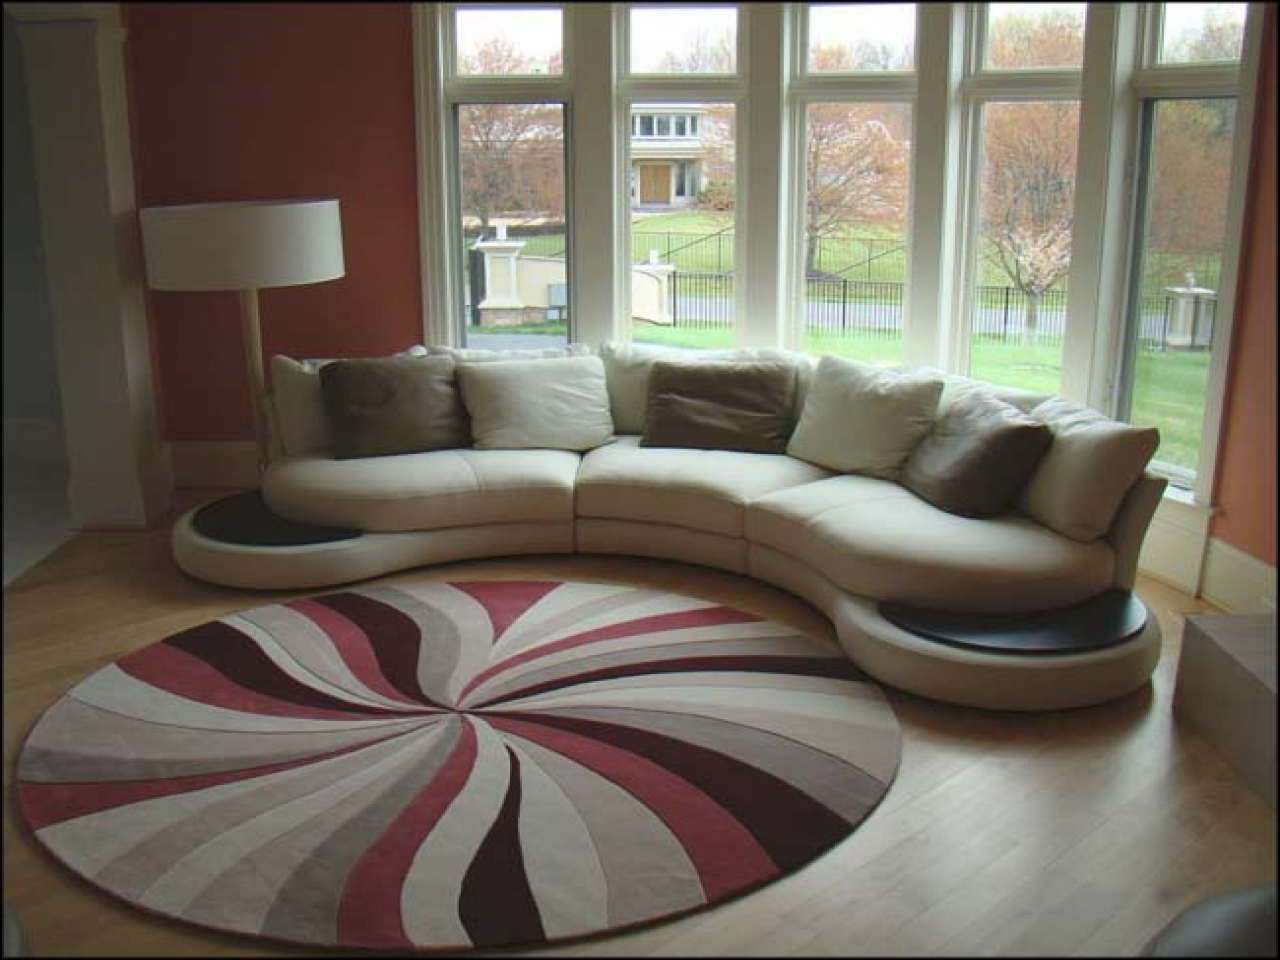 Rugs for cozy living room area rugs ideas roy home design - Maximizing design of living room by determining its needs ...